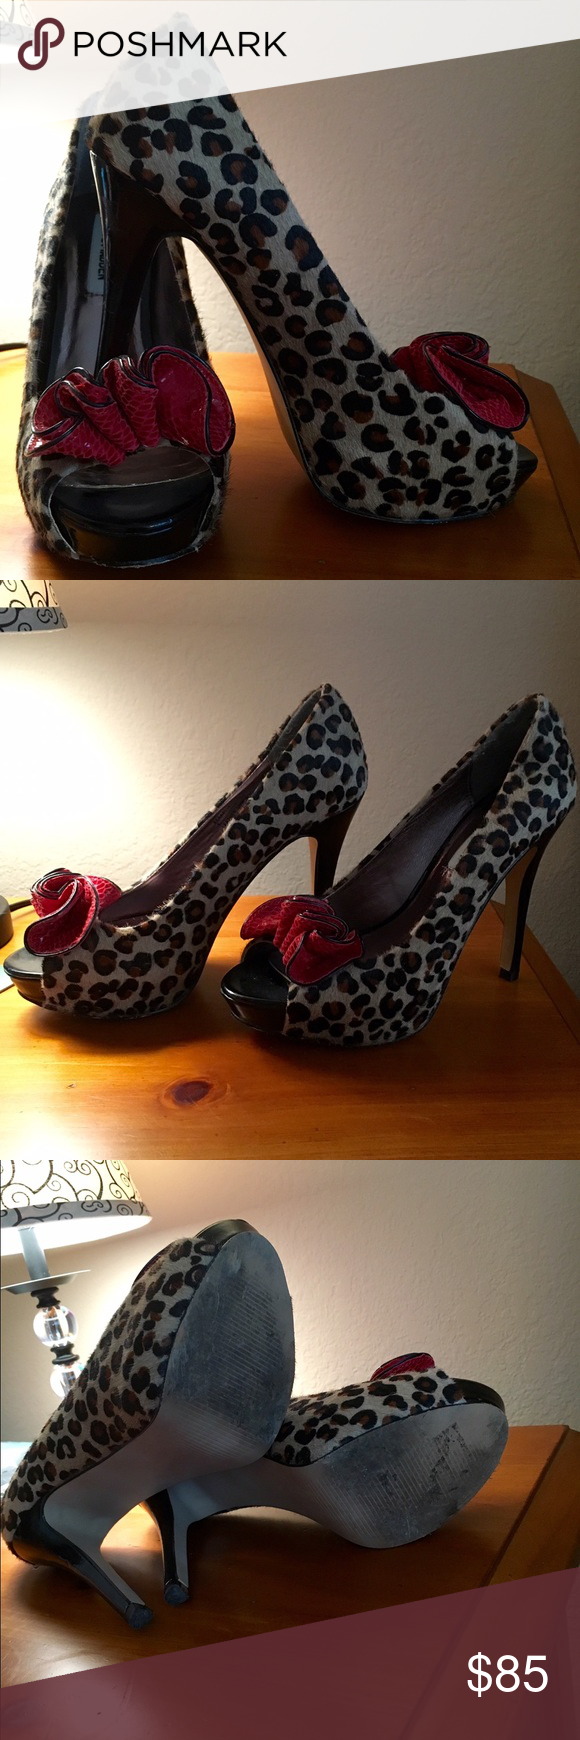 Steve Madden Leopard Print Heels with Red Bow Gorgeous Steve Madden Leopard print peep toe heels with red leather bows.  These are so adorable and make an amazing statement! Good condition! Bottoms have some wear (can be seen in pictures).  The Metallic inside is starting to peel where the ball of your foot goes but could easily be glued back into place.  They are a size 6. OBO Steve Madden Shoes Heels